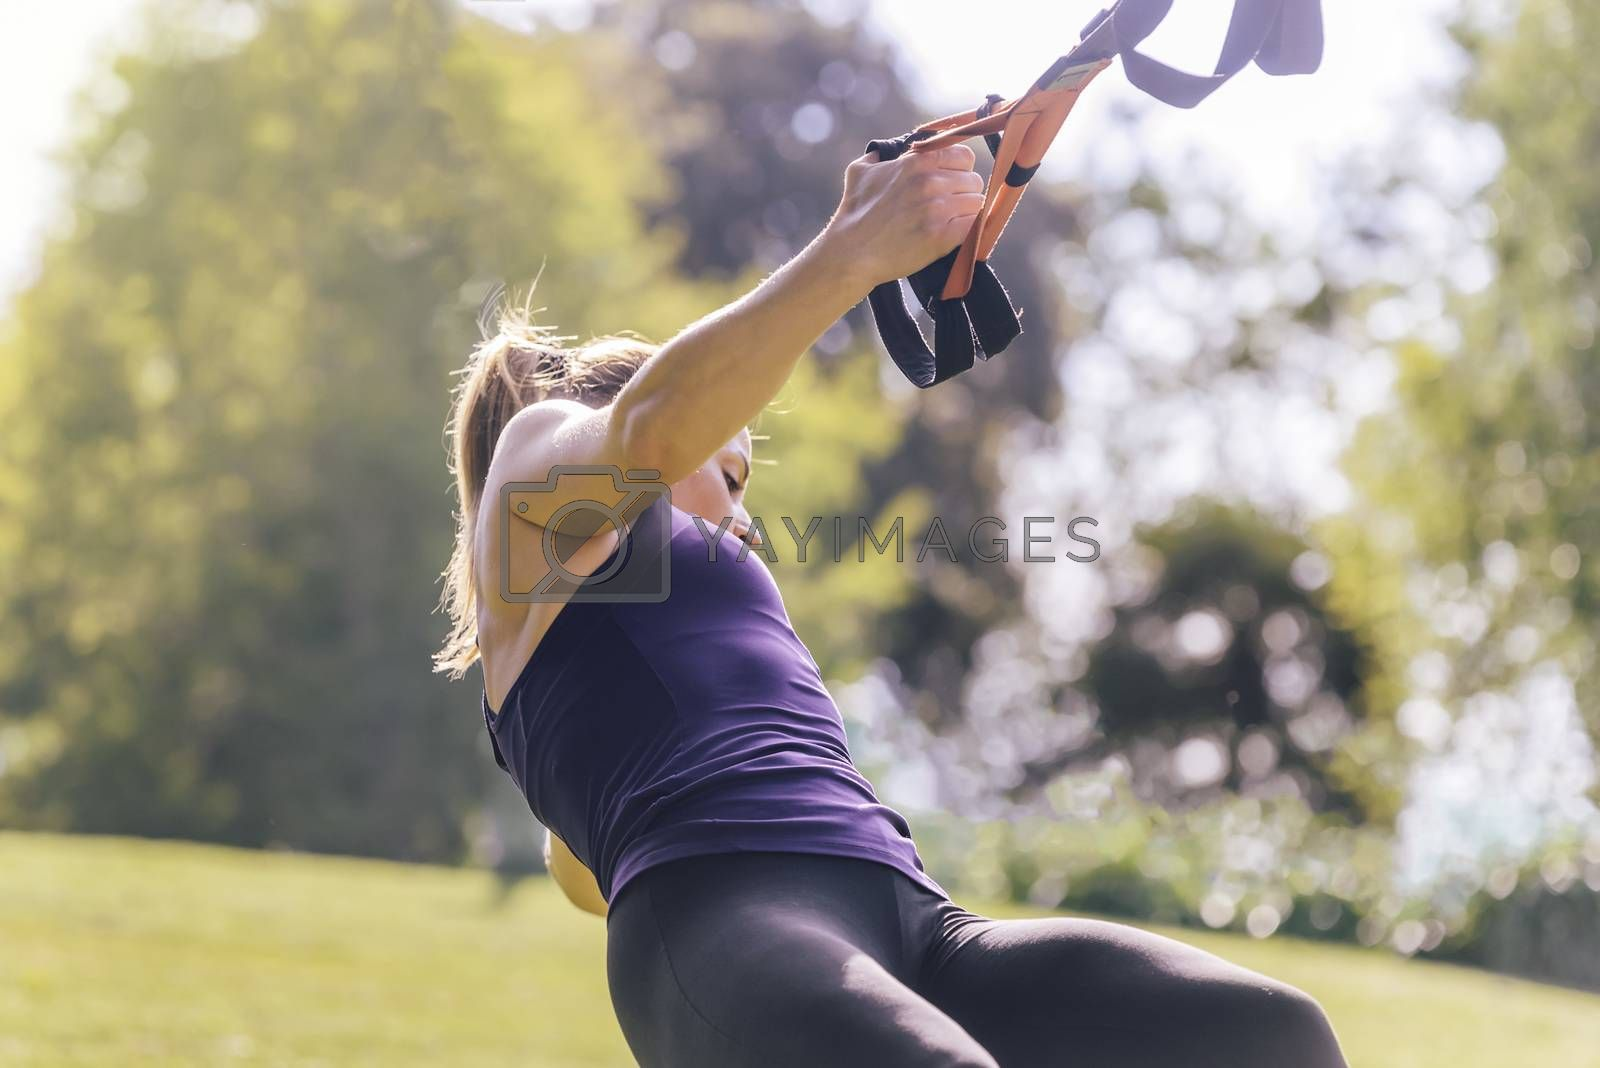 athletic fitness woman training with suspension straps, during functional workout in a sunny outdoor park in the morning